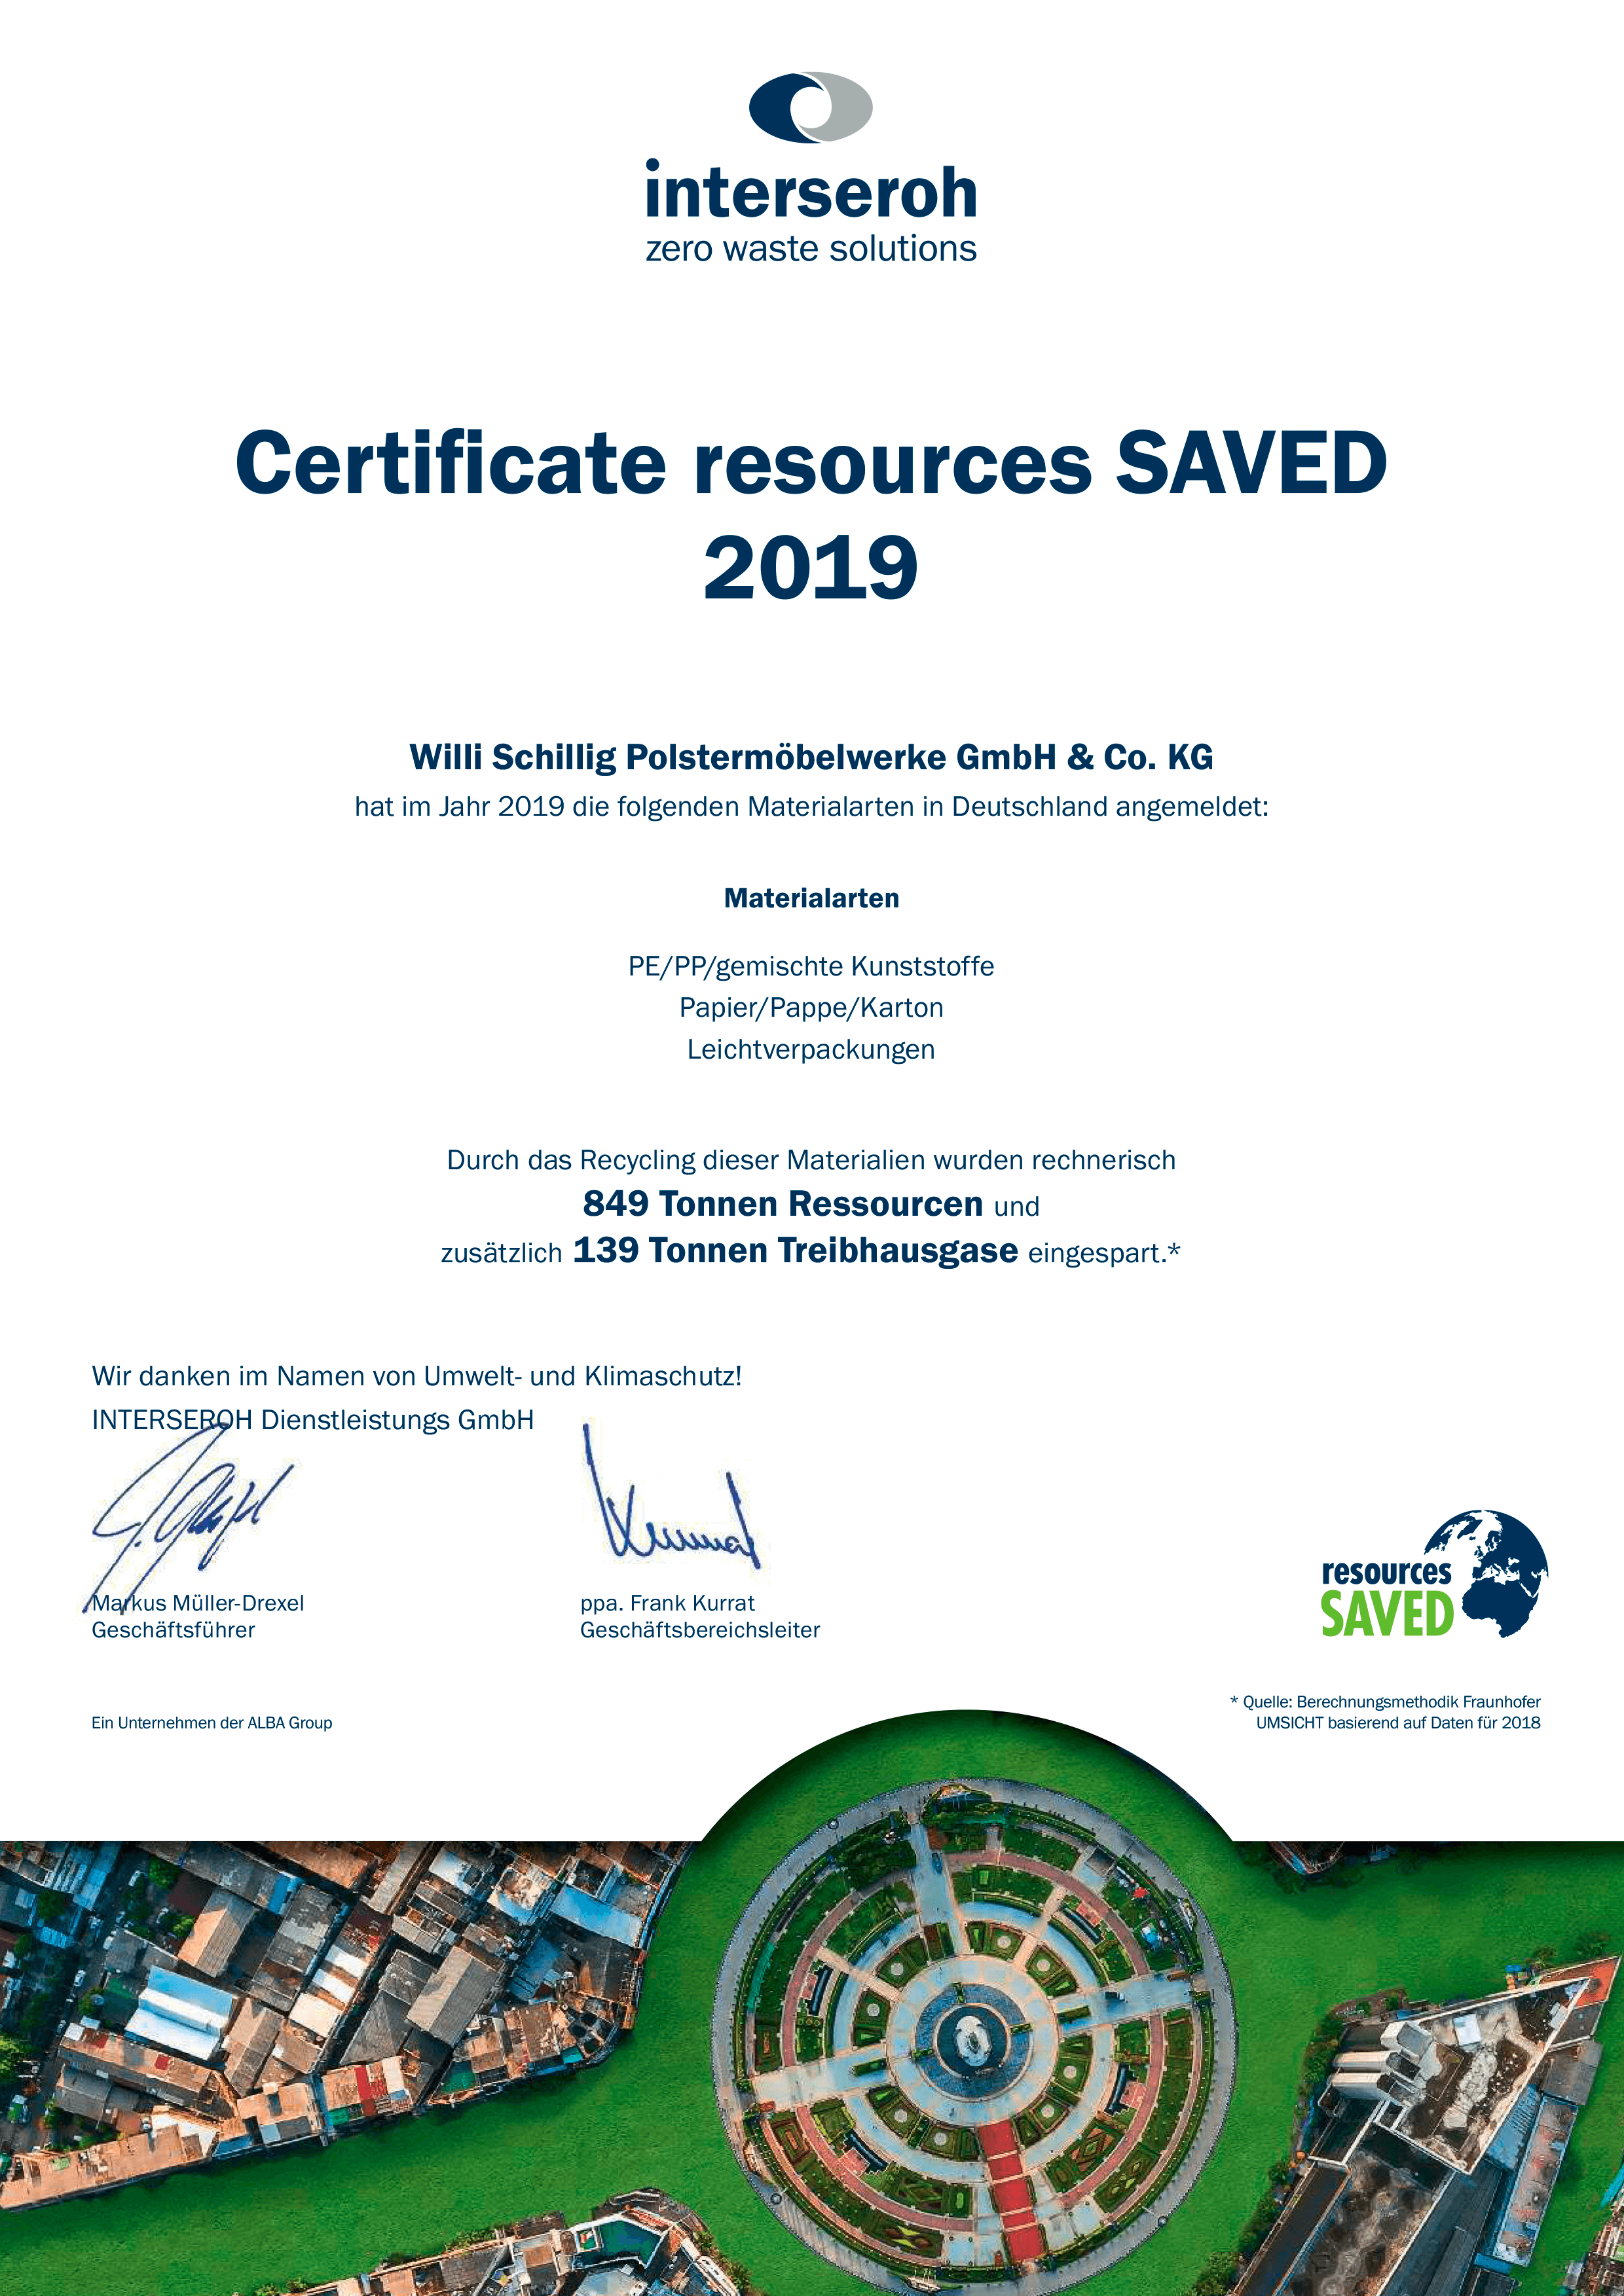 »resources SAVED« – Ressourcenschonung durch Recycling